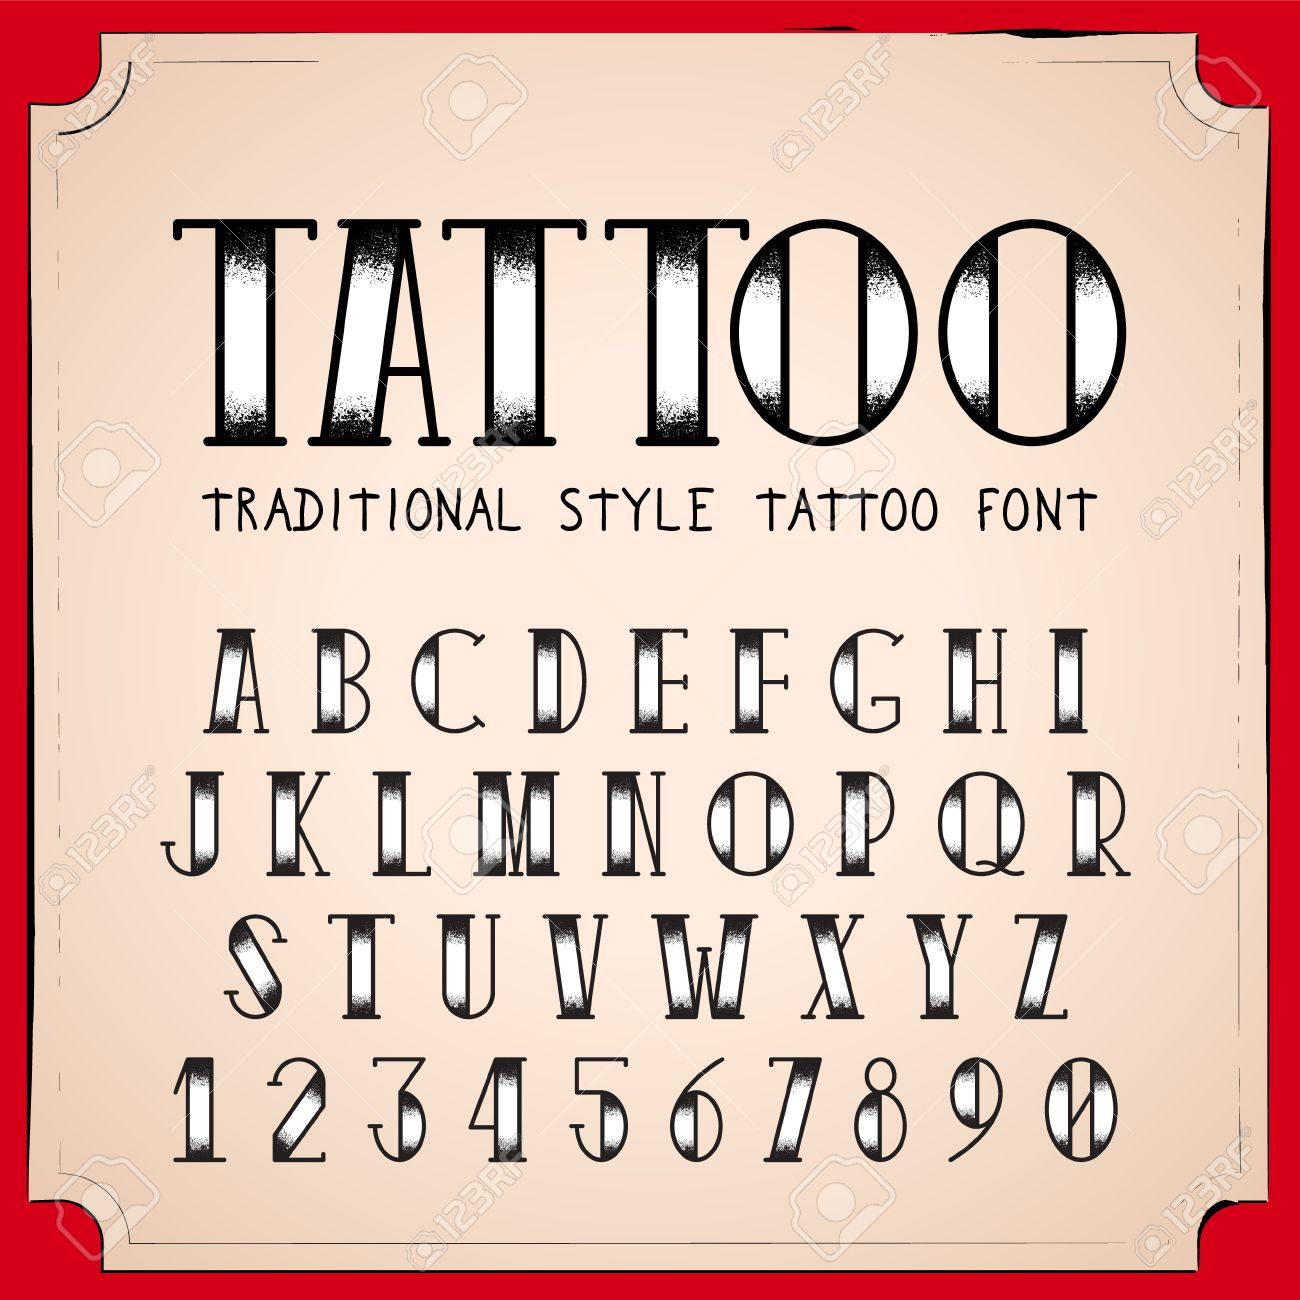 Old school tattoo style font vector traditional ink tattoo alphabet old school tattoo style font vector traditional ink tattoo alphabet stock vector 46151406 altavistaventures Images